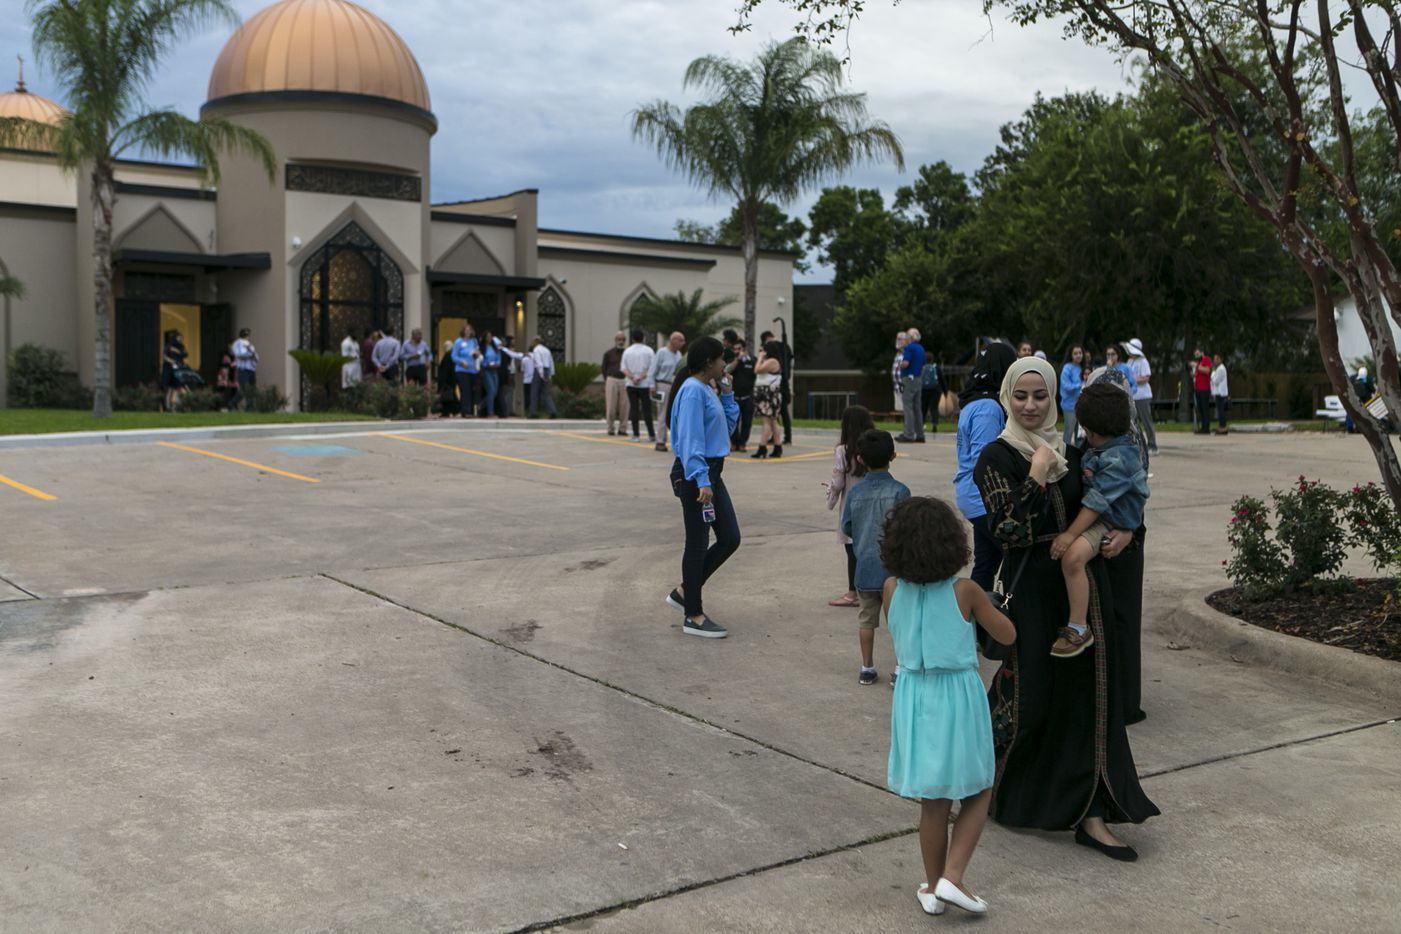 A family leaves from the newly rebuilt Victoria Islamic Center in Victoria, Texas, Saturday, Sept. 29, 2018. The new mosque rebuilt from more than $1 million raised by a Gofundme effort.  (Josie Norris/The San Antonio Express-News via AP)